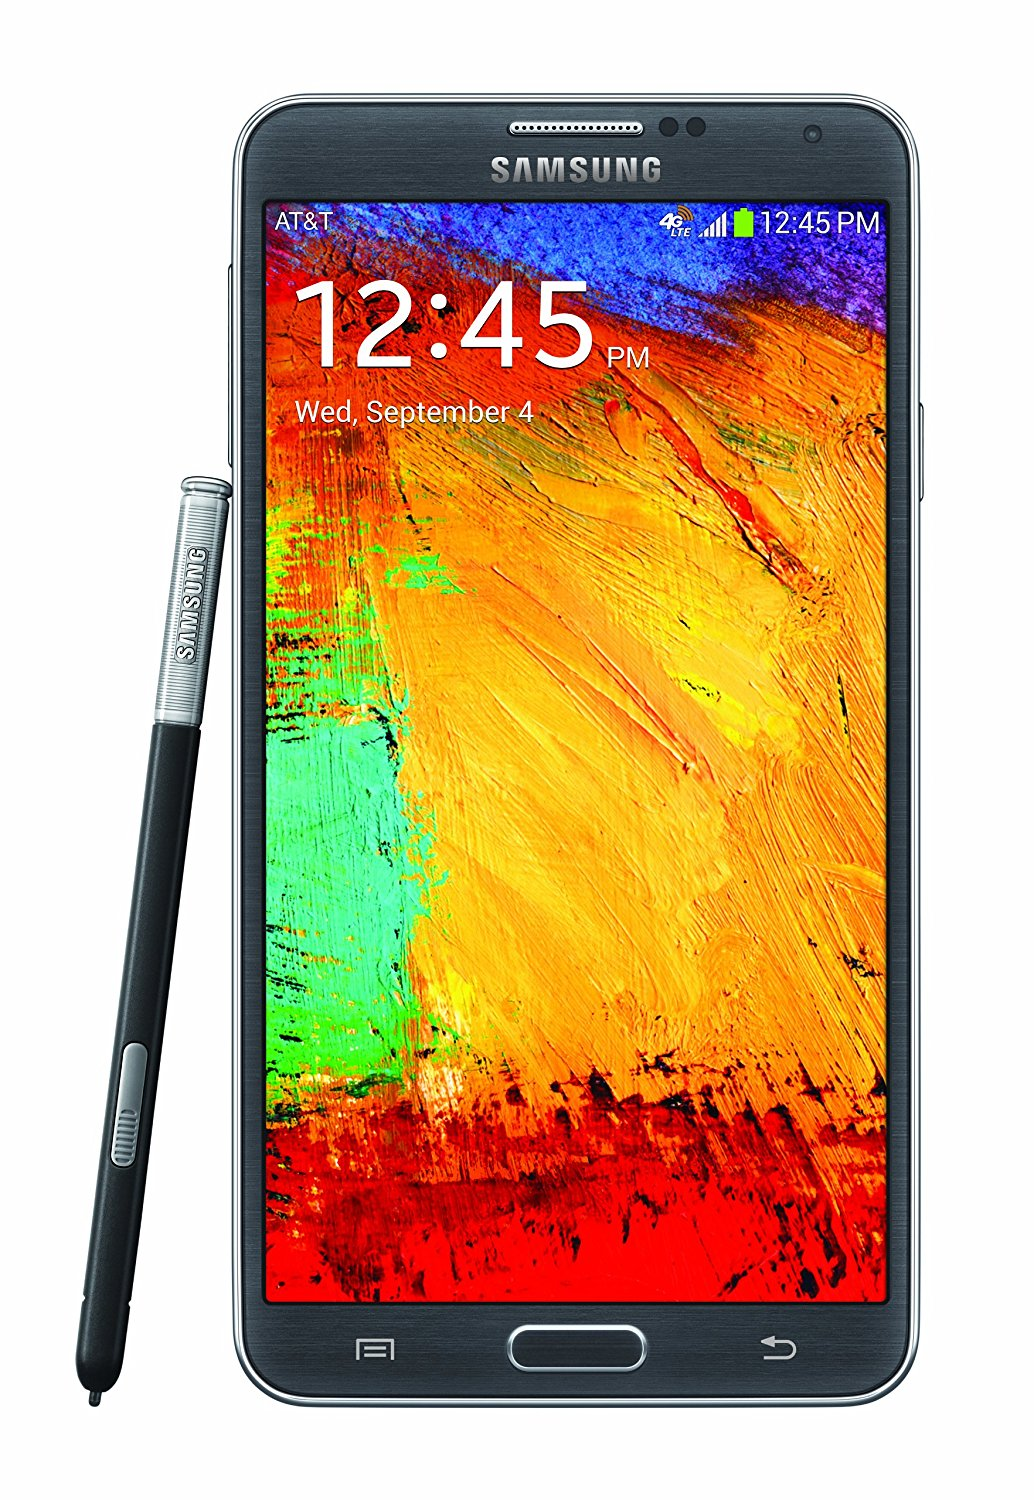 Offerta Samsung Galaxy Note 3 su TrovaUsati.it